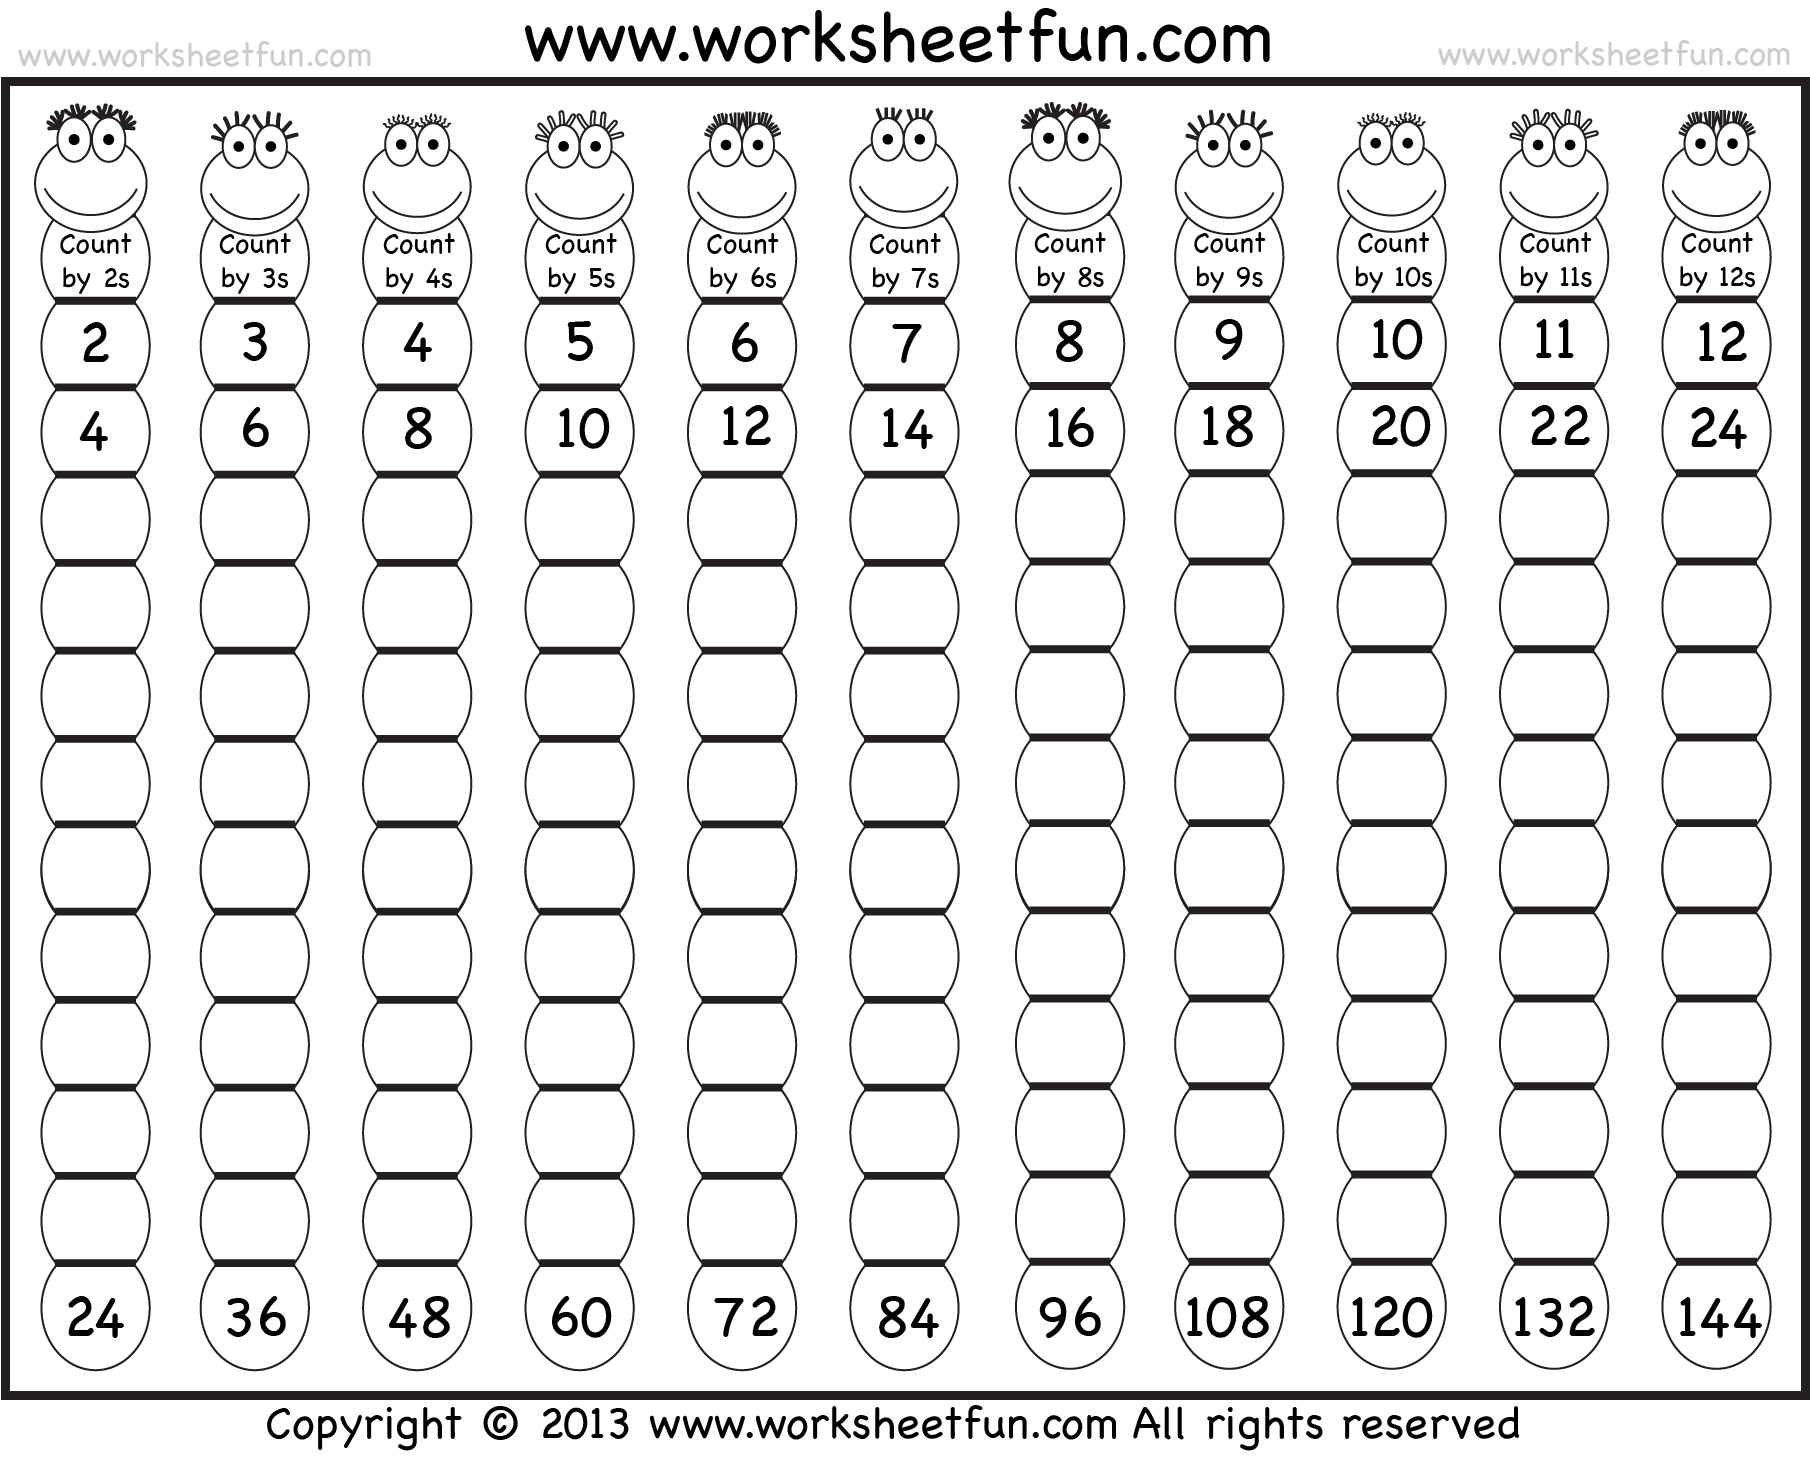 Worksheet 10001294 Multiplication Worksheets 2 3 4 5 10 Times – Multiplication Worksheets 2 3 4 5 10